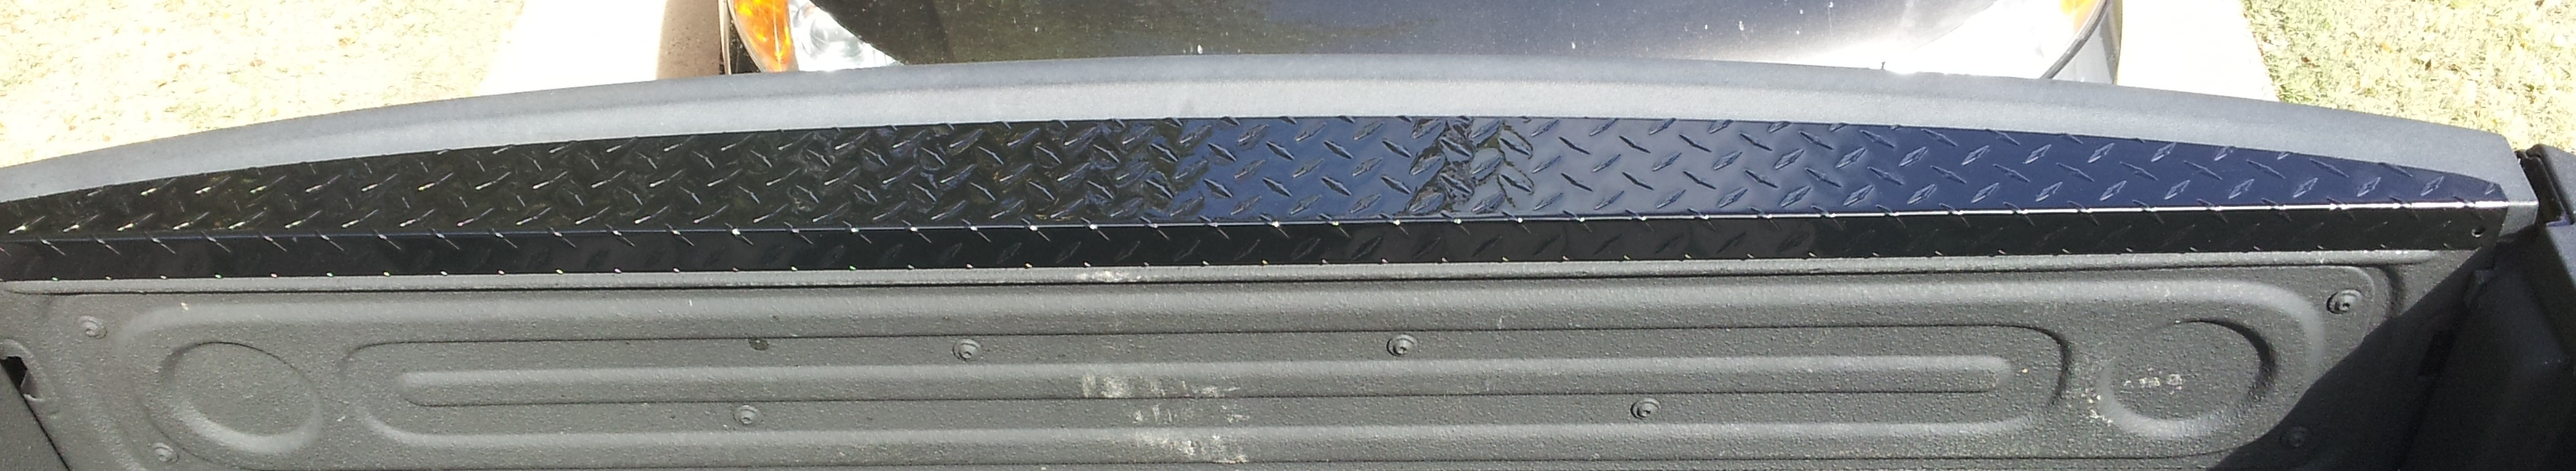 Tailgate Cap New Dodge on 2001 Dodge 2500 Silver